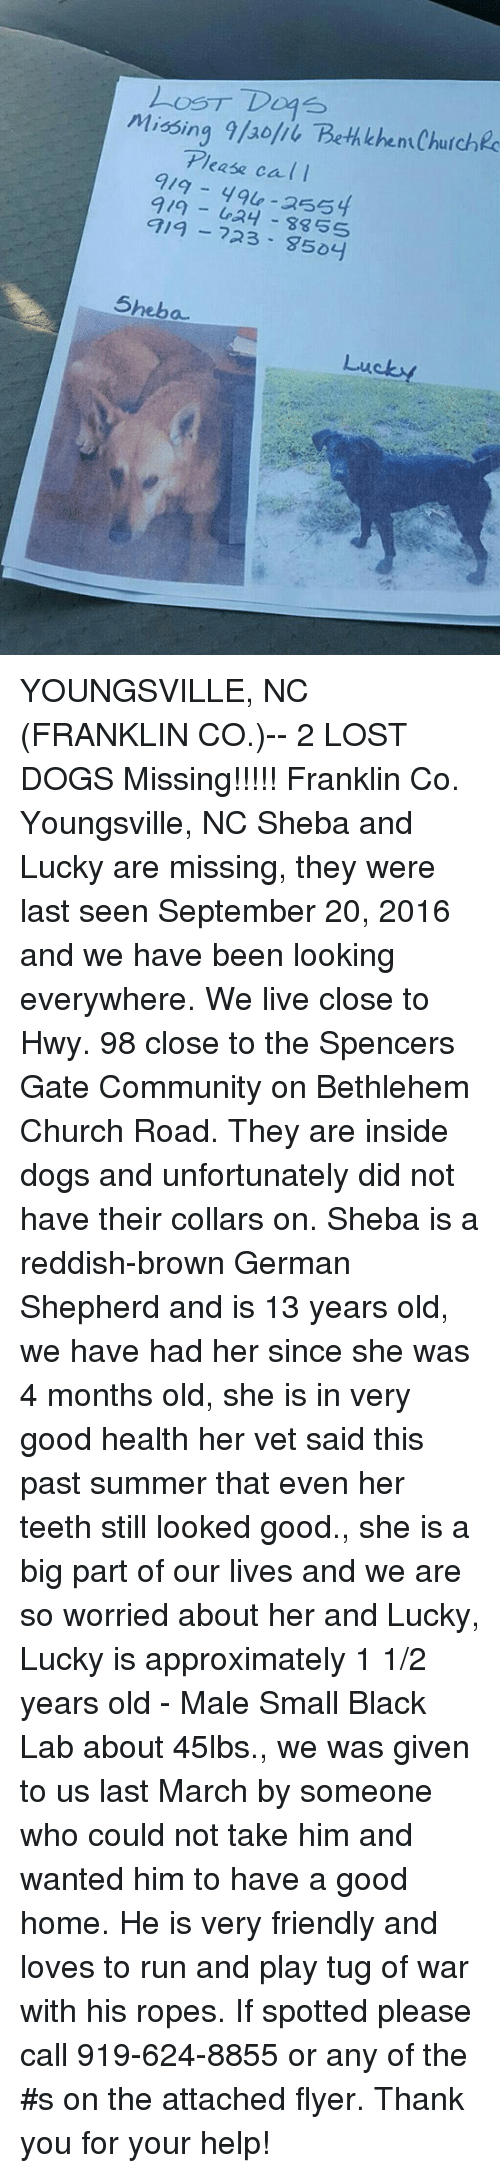 Church, Community, and Friends: Loos T Dogs  Missing 9/aolii Bethlehen Churchec  Please call  que -255  919 719 723 835S  9504  Sheba  Lucky YOUNGSVILLE, NC (FRANKLIN CO.)-- 2 LOST DOGS  Missing!!!!! Franklin Co. Youngsville, NC  Sheba and Lucky are missing, they were last seen September 20, 2016 and we have been looking everywhere. We live close to Hwy. 98 close to the Spencers Gate Community on Bethlehem Church Road. They are inside dogs and unfortunately did not have their collars on. Sheba is a reddish-brown German Shepherd and is 13 years old, we have had her since she was 4 months old, she is in very good health her vet said this past summer that even her teeth still looked good., she is a big part of our lives and we are so worried about her and Lucky, Lucky is approximately 1 1/2 years old - Male Small Black Lab about 45lbs., we was given to us last March by someone who could not take him and wanted him to have a good home. He is very friendly and loves to run and play tug of war with his ropes. If spotted please call 919-624-8855 or any of the #s on the attached flyer. Thank you for your help!